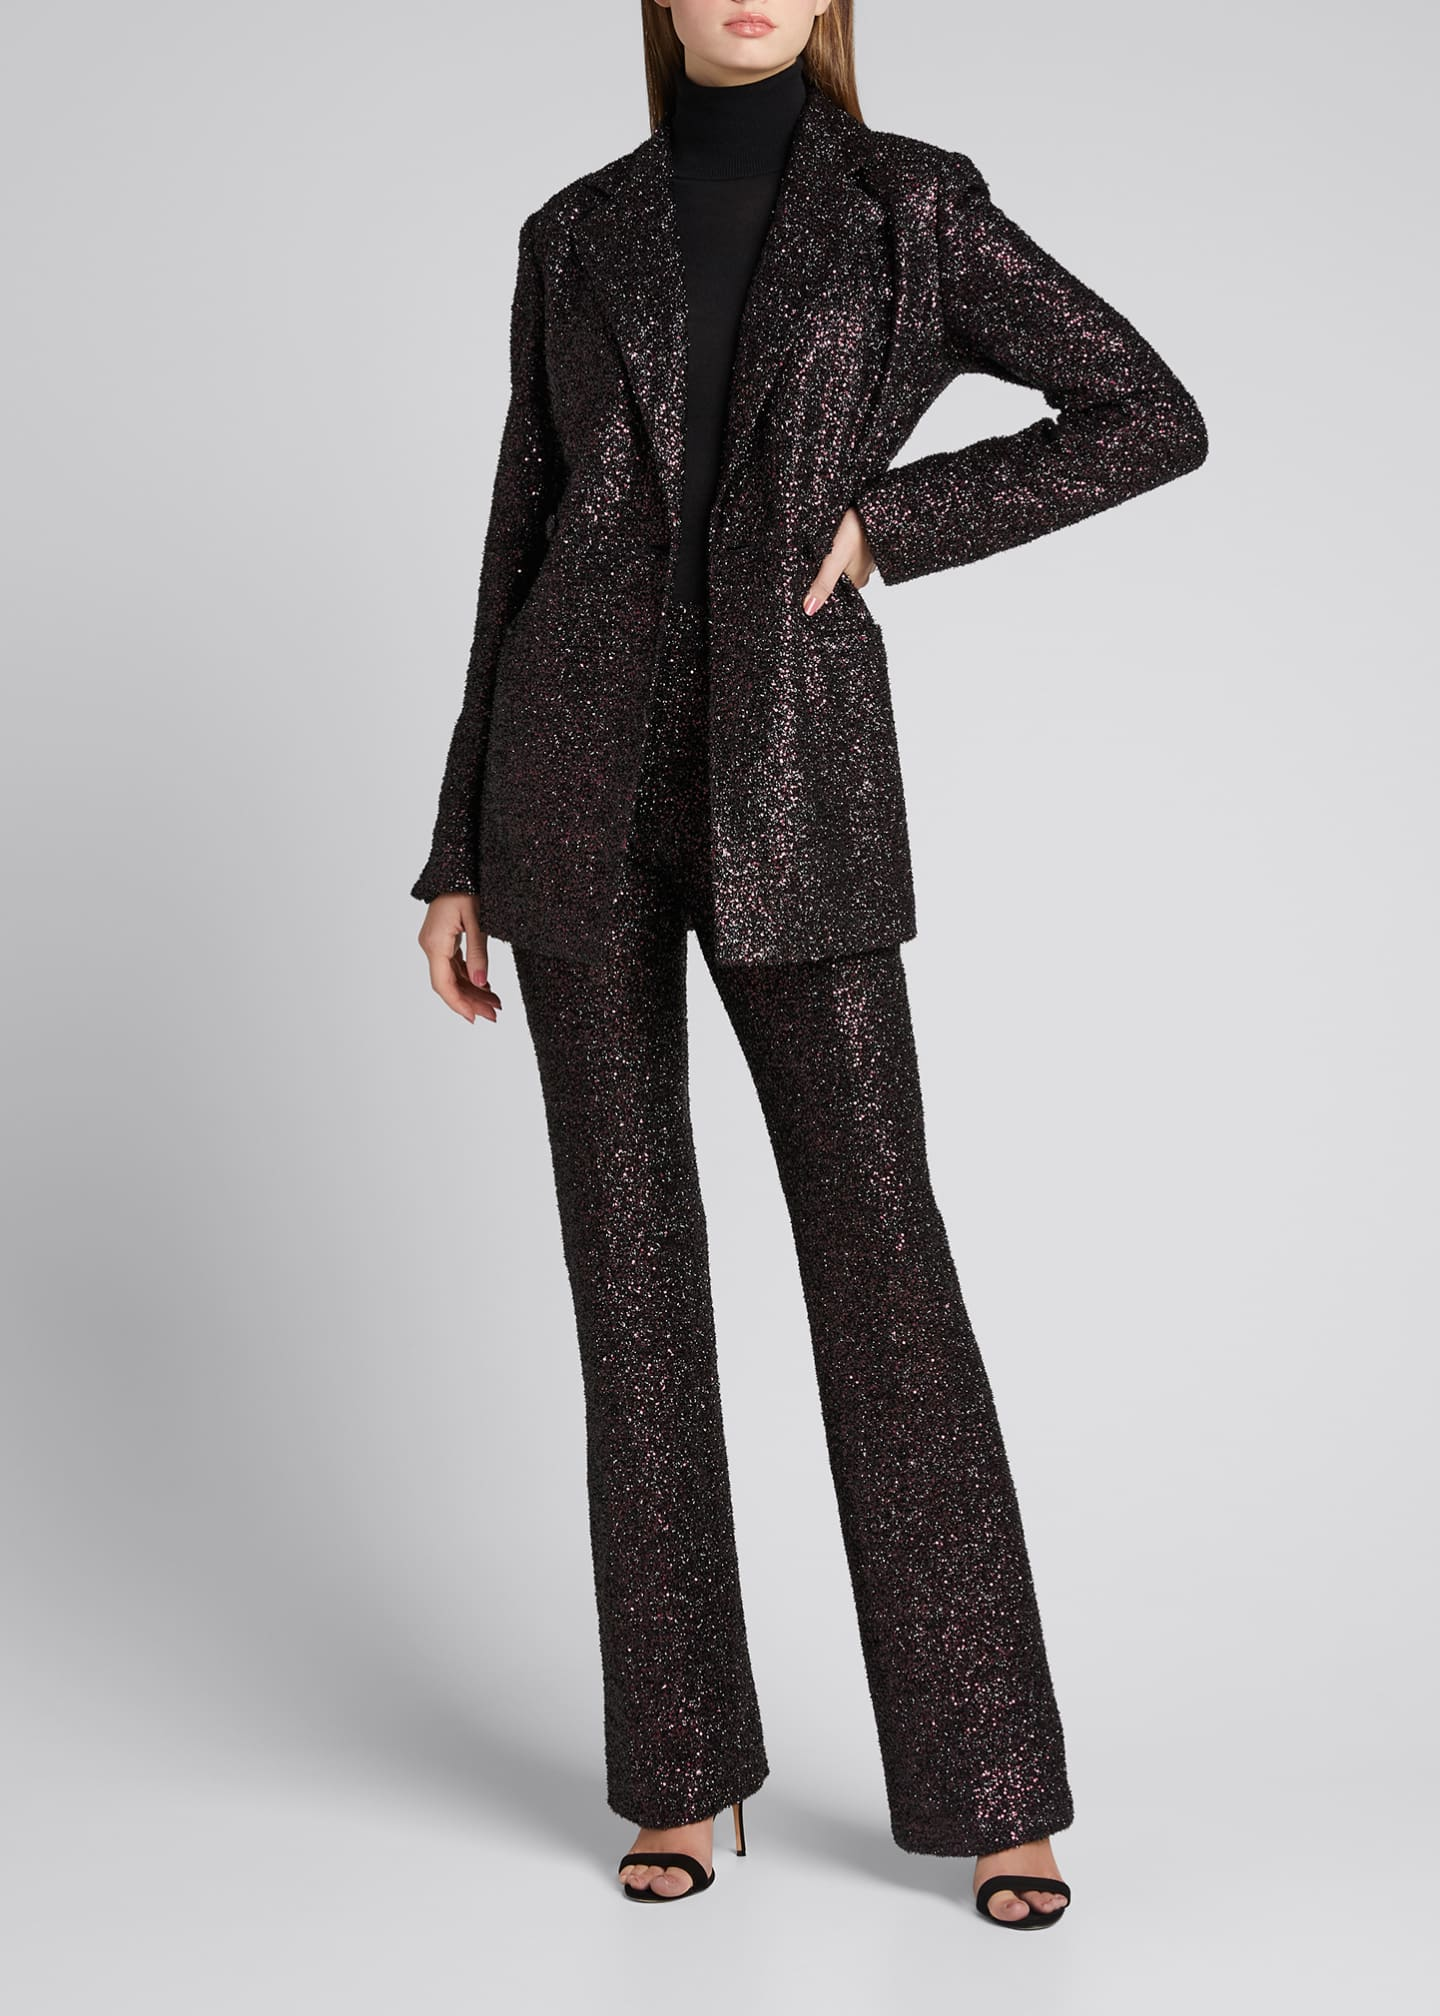 Sequin Flared-Leg Pants